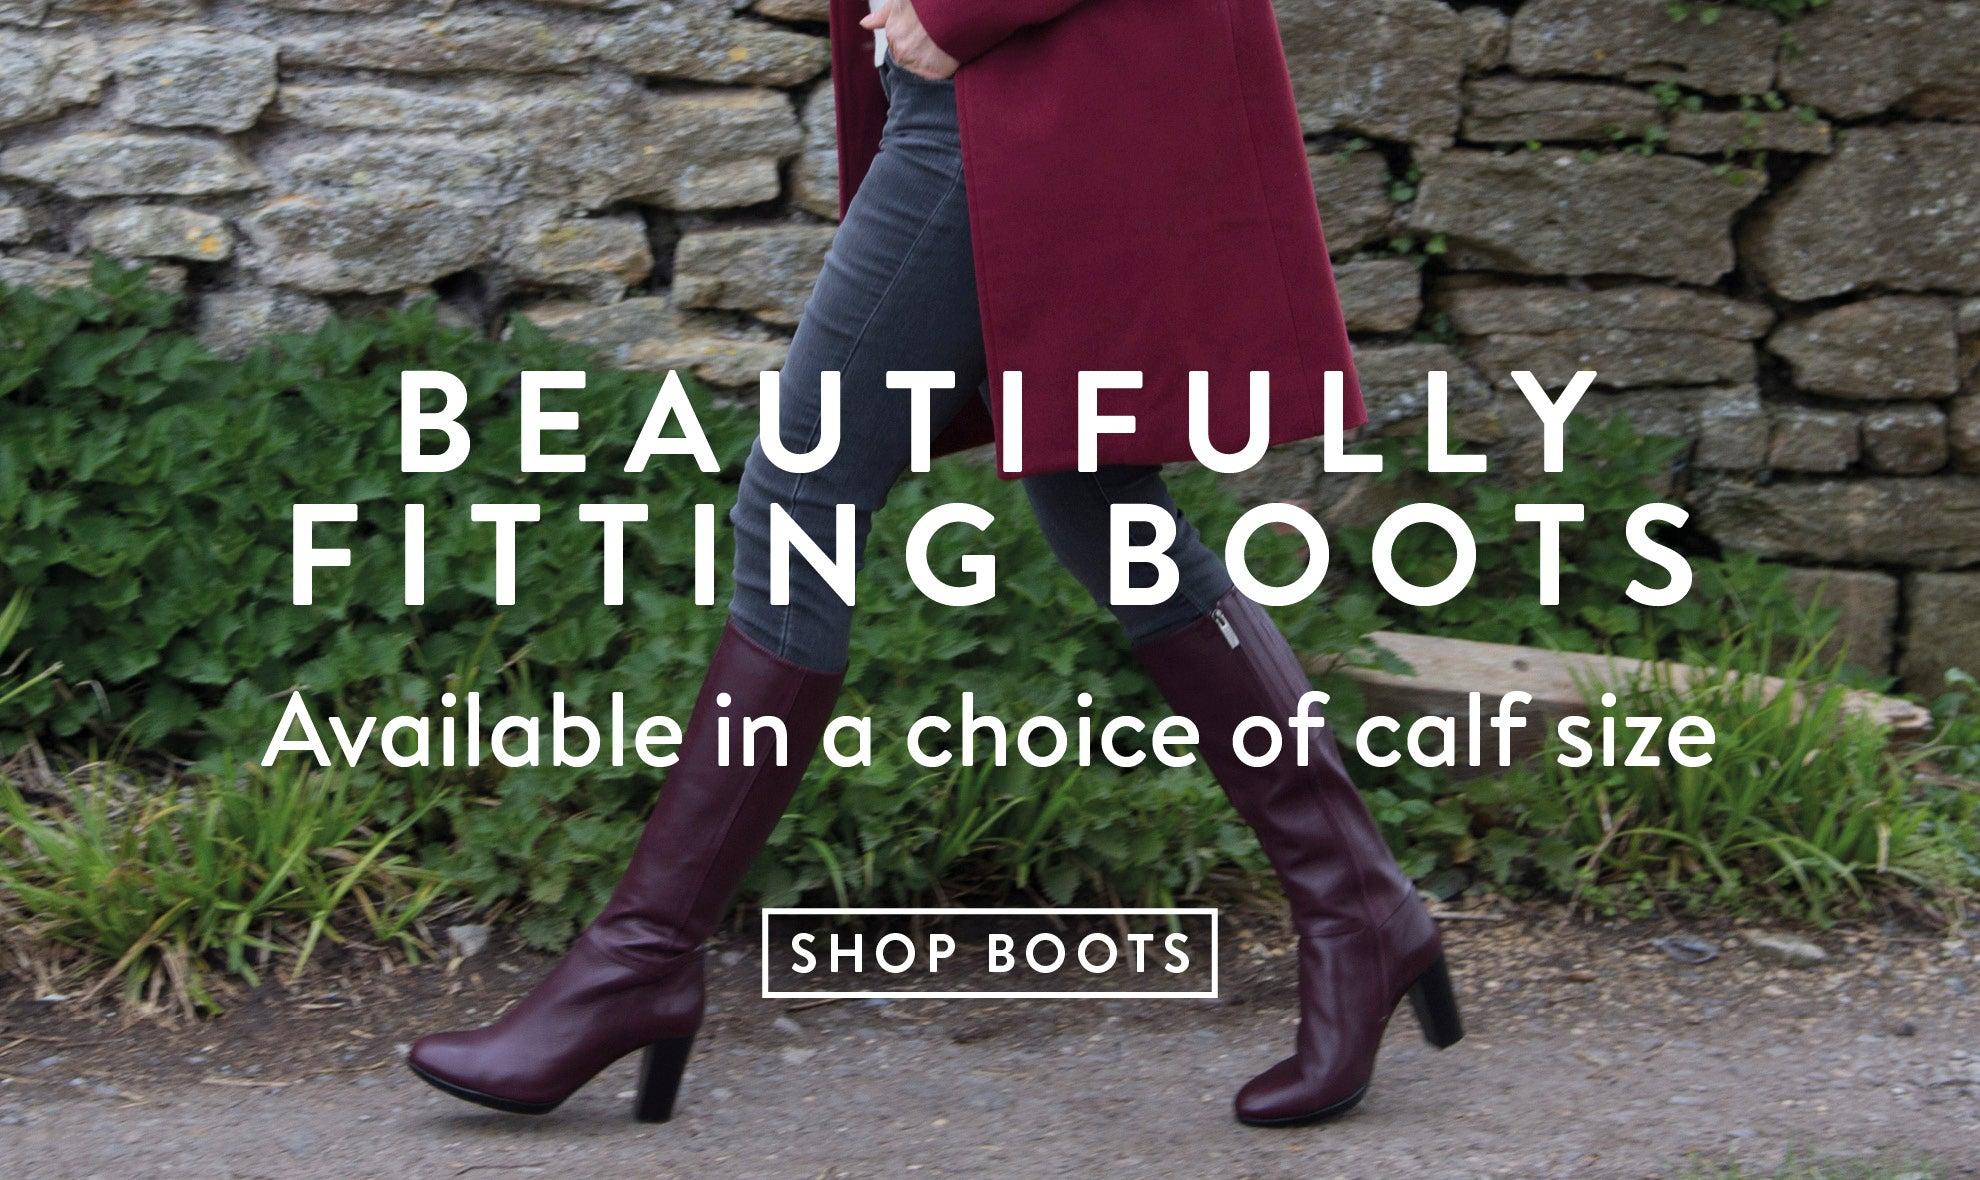 Beautifully Fitting Boots